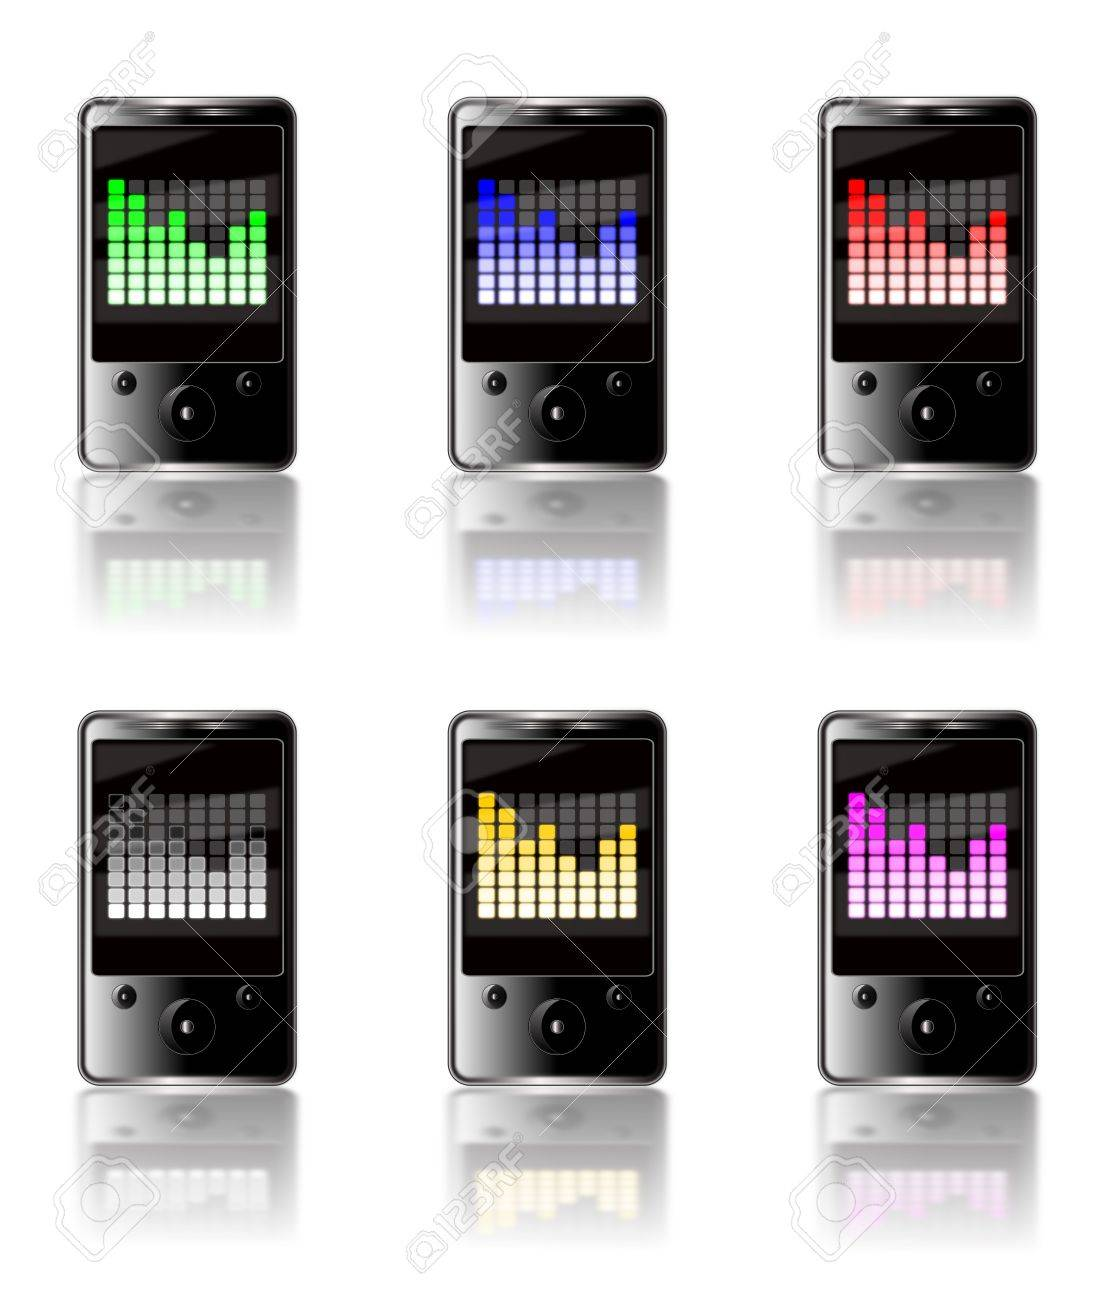 Illustration of six generic touch screen MP3 players isolated on a white background with a luminous graphic equalizer display on each screen in various colors with reflections below. Stock Illustration - 6317834